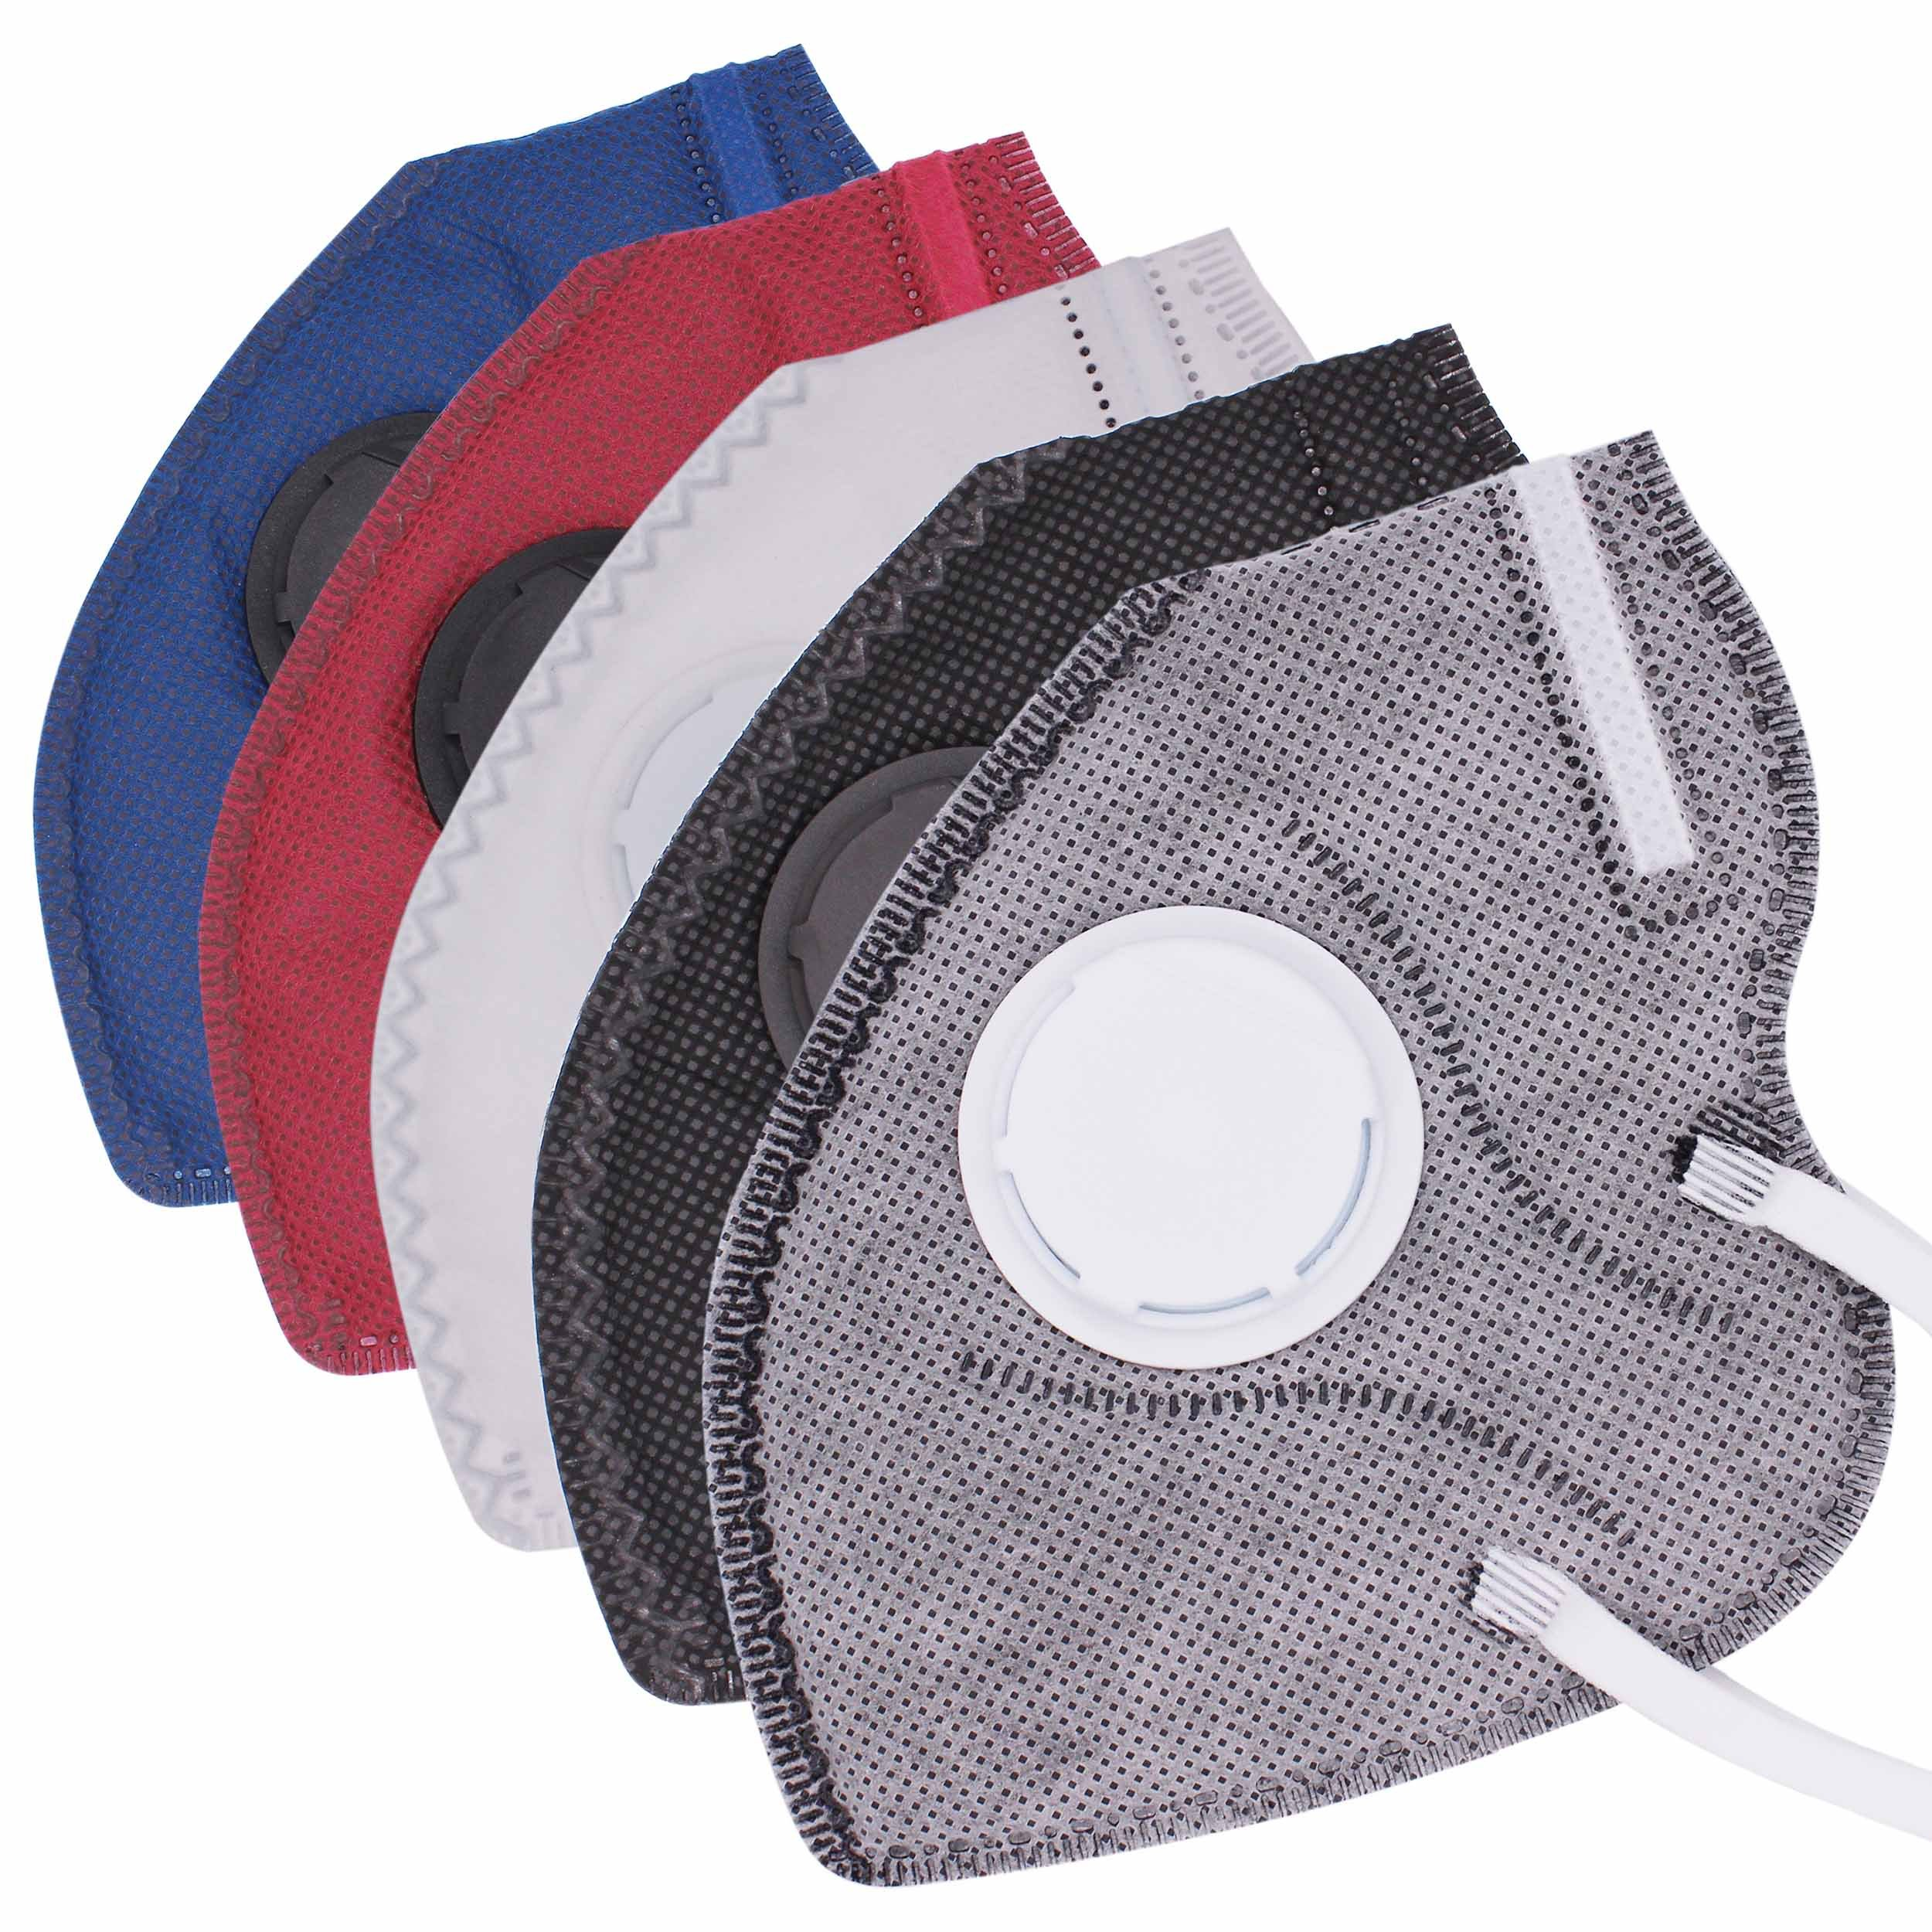 Respirator Mouth Mask Anti Pollution Mask Unisex Outdoor Protection N95 4 Layer Filter Insert Anti Dust Mask with Valve Filter KZ22